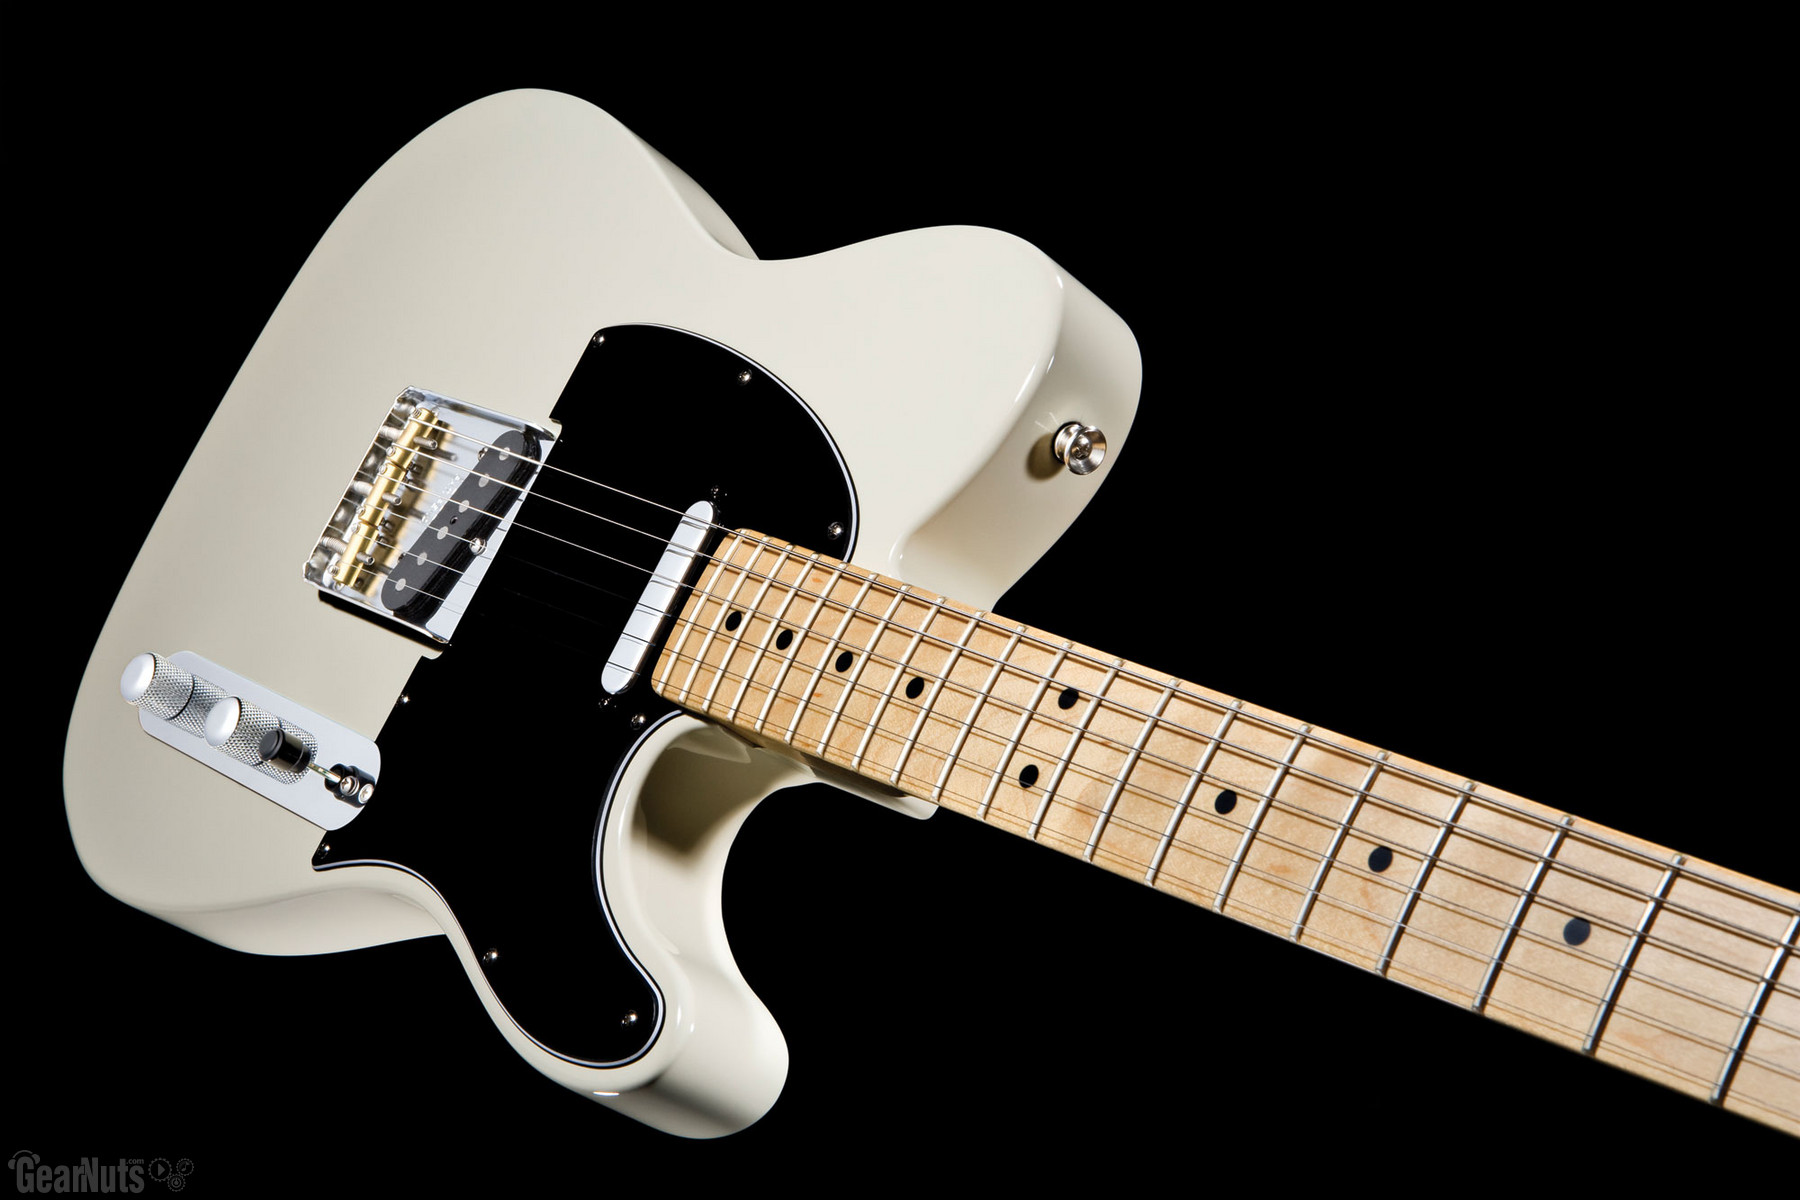 Fender American Special Telecaster   Olympic White Gearnutscom 1800x1200